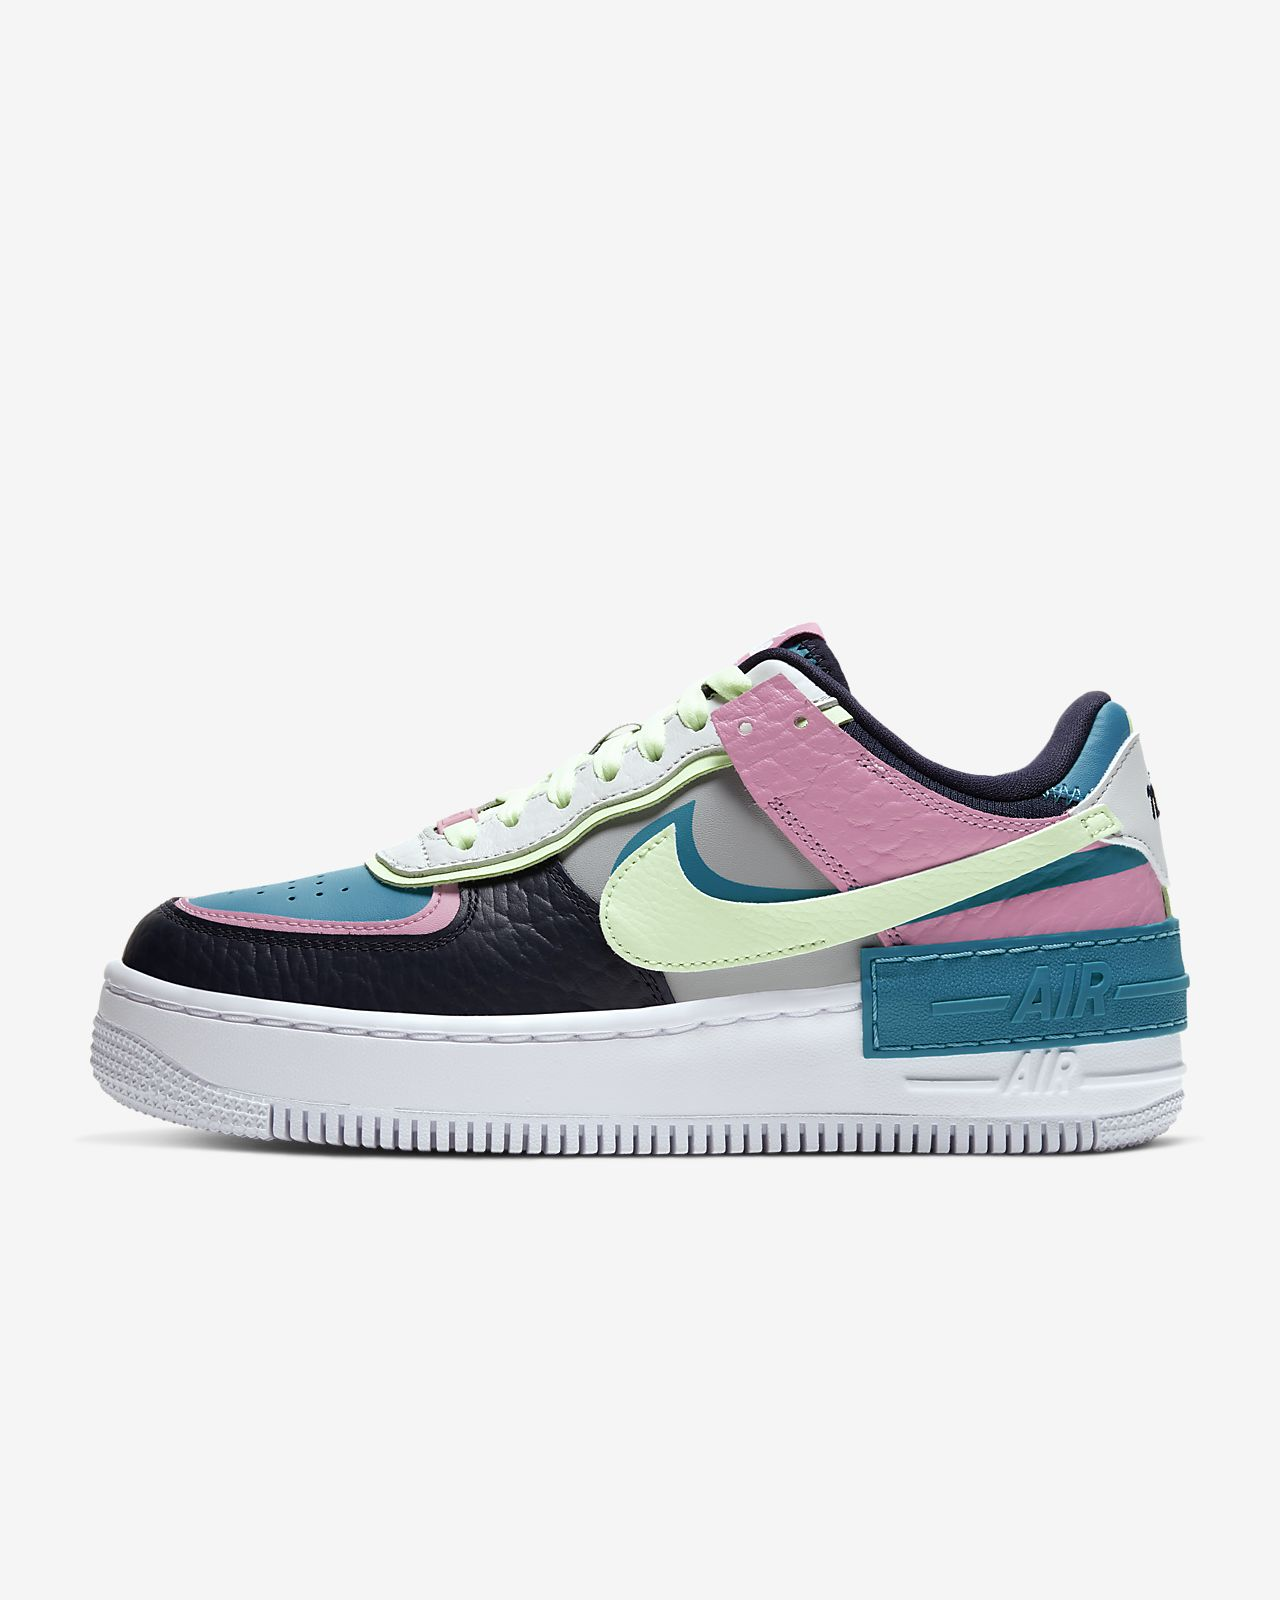 Nike AF 1 Shadow SE Women's Shoe